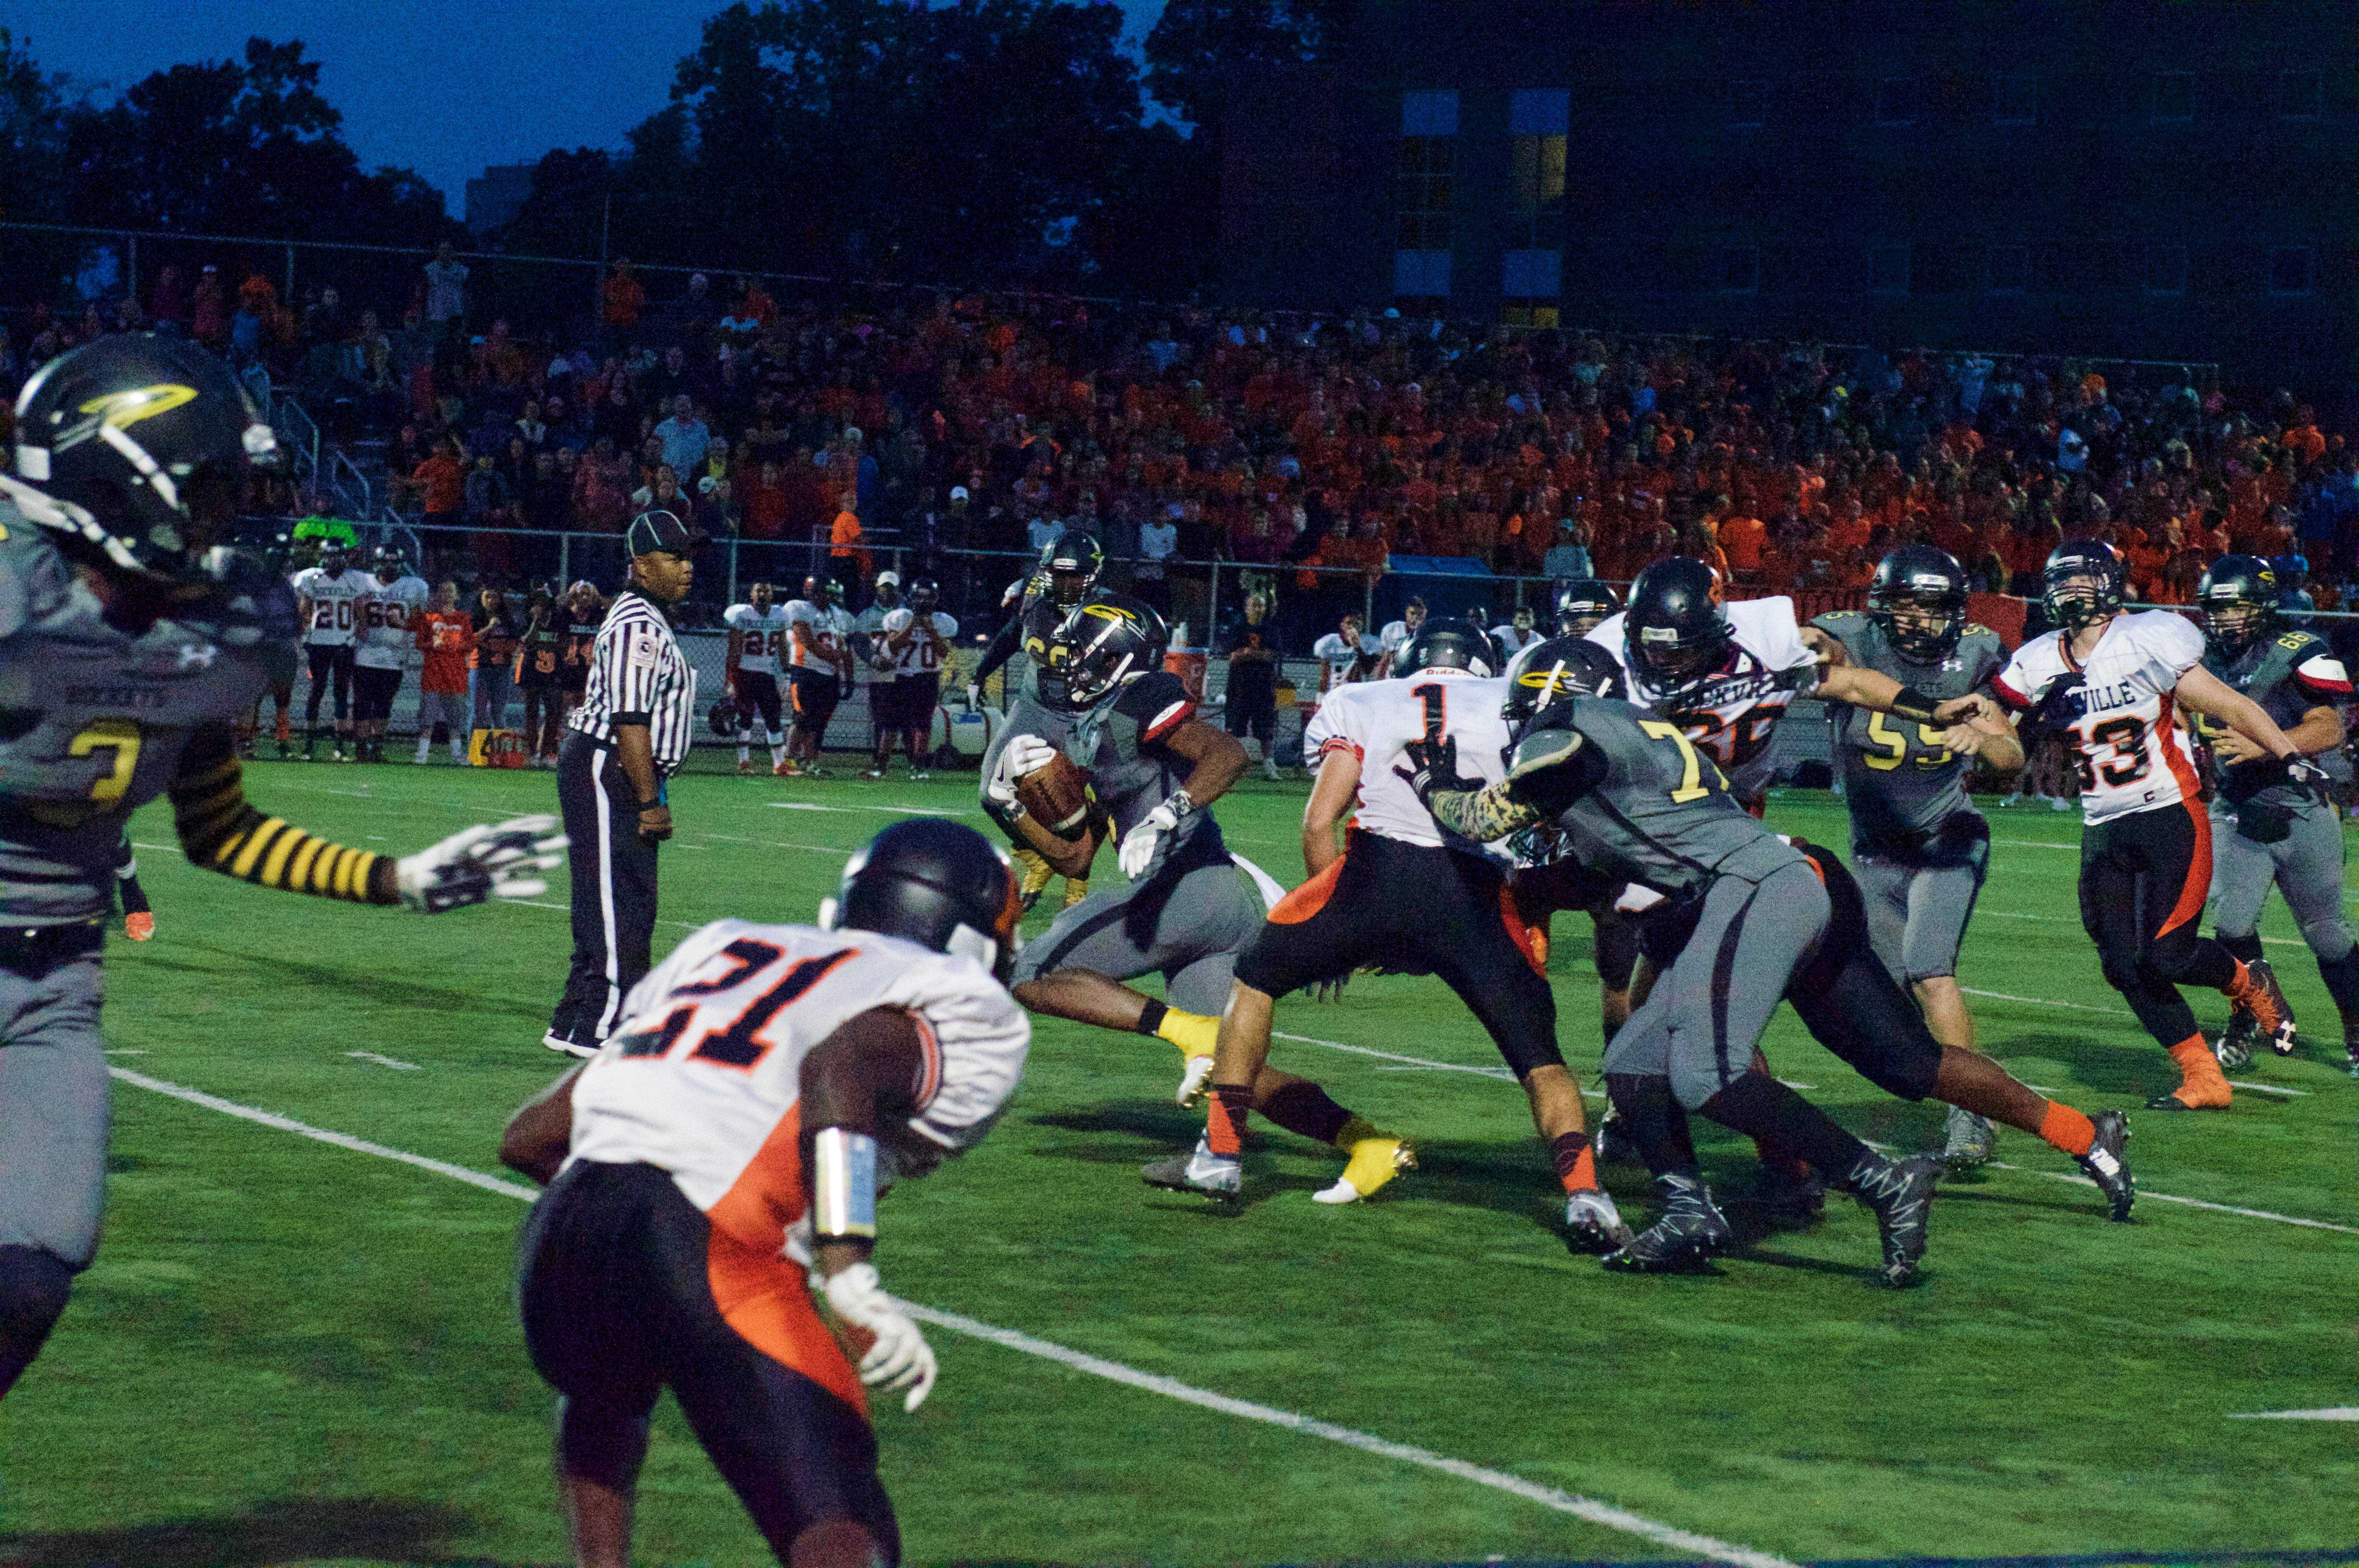 Rockets beat rival Rockville Rams to continue undefeated season